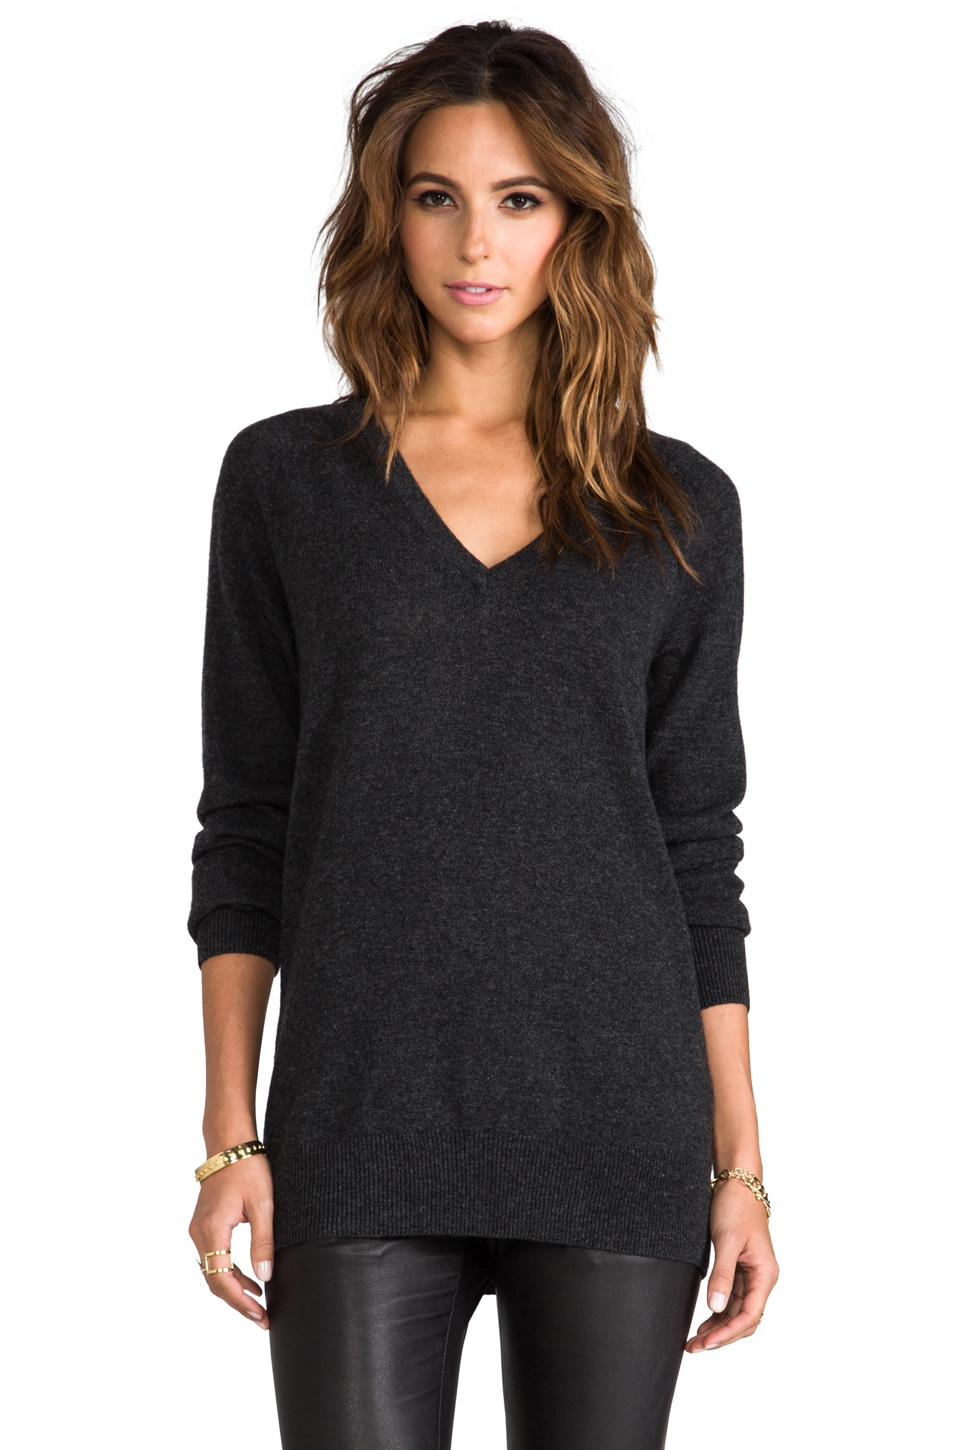 Equipment Asher V-Neck Sweater in Charcoal